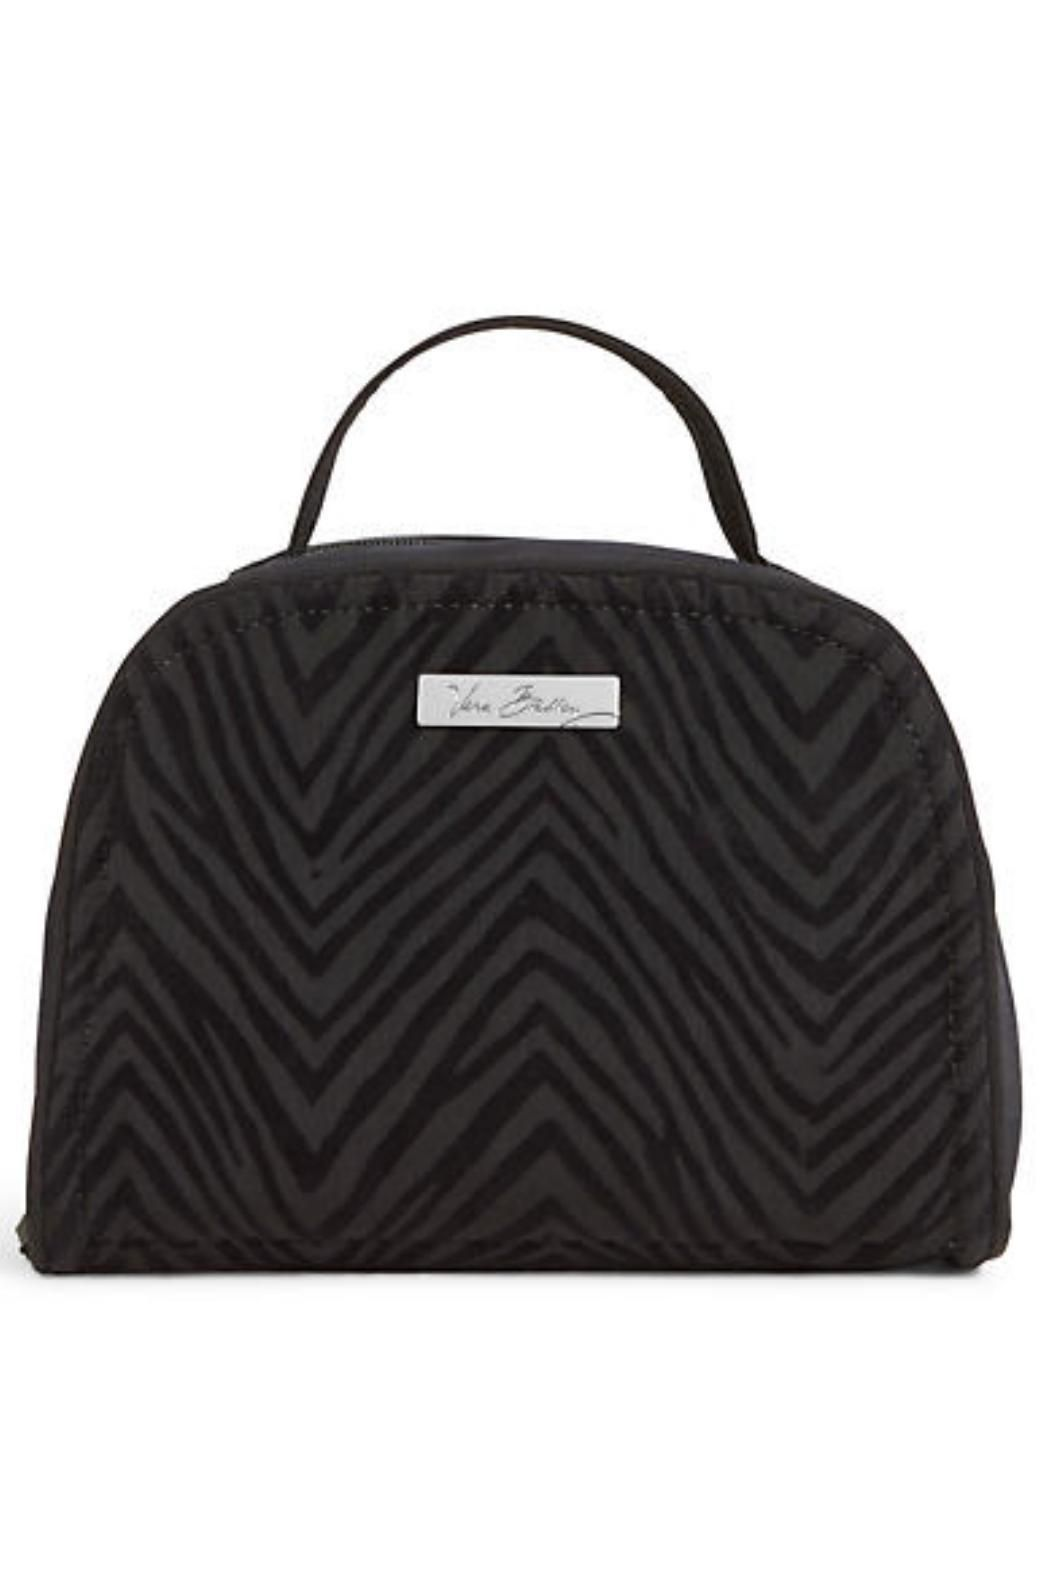 """Meet the Vera Bradley Travel Jewelry Organizer in the Classic Black Flocked Zebra finish.  You're not materialistic but admit it: you enjoy shiny things. Use this travel organizer to take your baubles on the road and never be less than perfectly accessorized again.  Inside two large and four small clear zip pockets and two additional elastic slip pockets. One padded ring strap. Zip closure.  Now what else can we do for you today?    Dimensions 7 """" wide x 5 """" high x 2 """" deep with 2"""" handle…"""